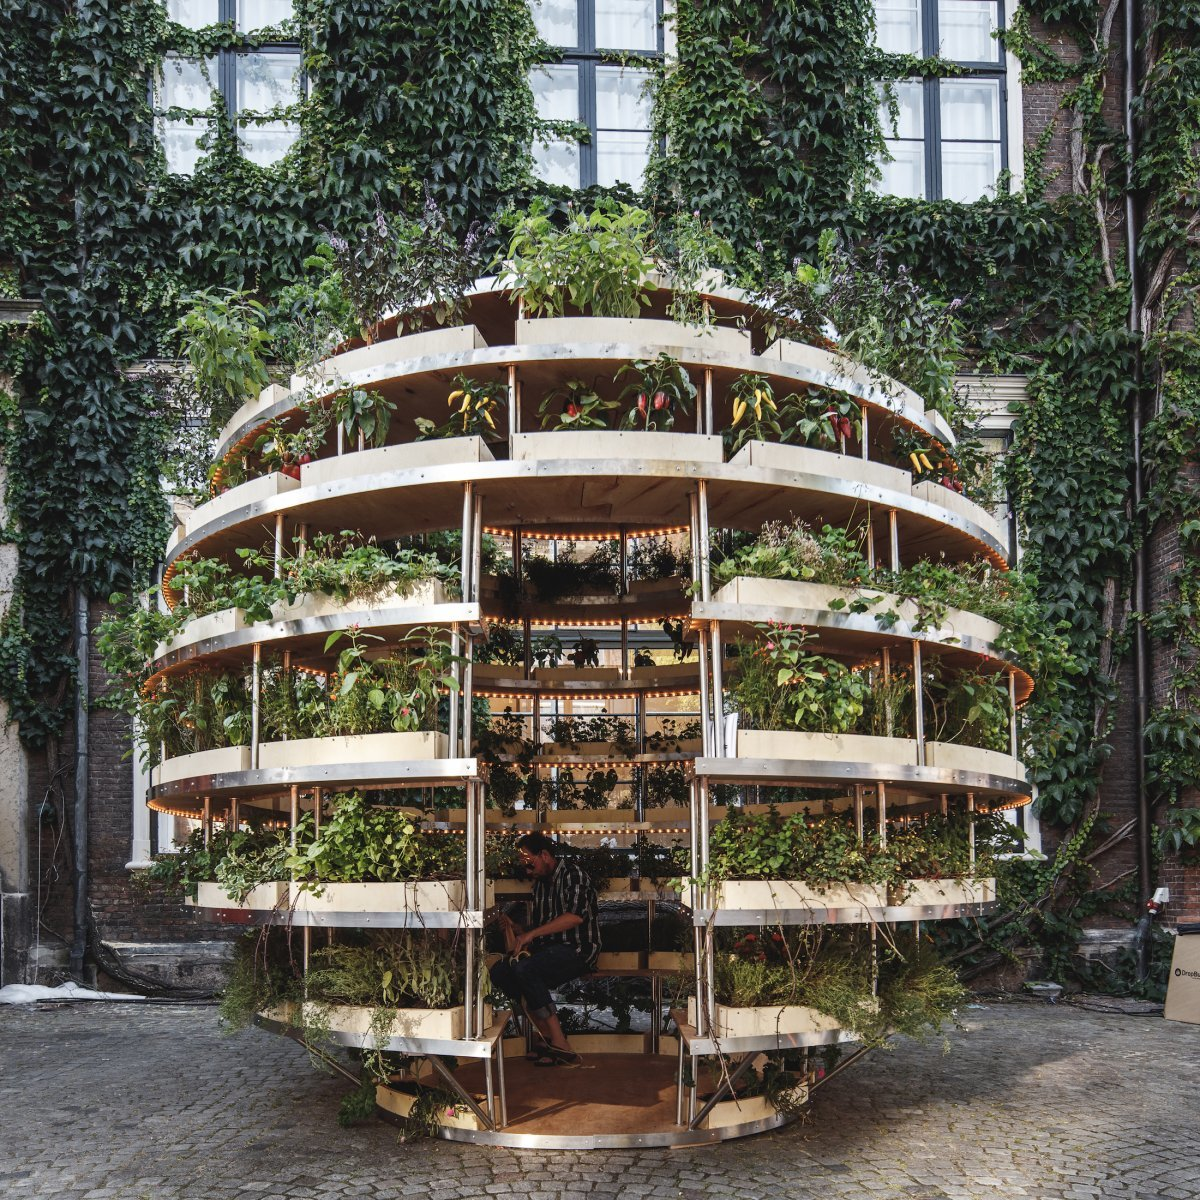 the-first-growroom-was-built-in-2016-and-exhibited-at-the-chart-art-fair-in-copenhagen-pictured-below-the-latest-version-doesnt-include-any-metal-parts